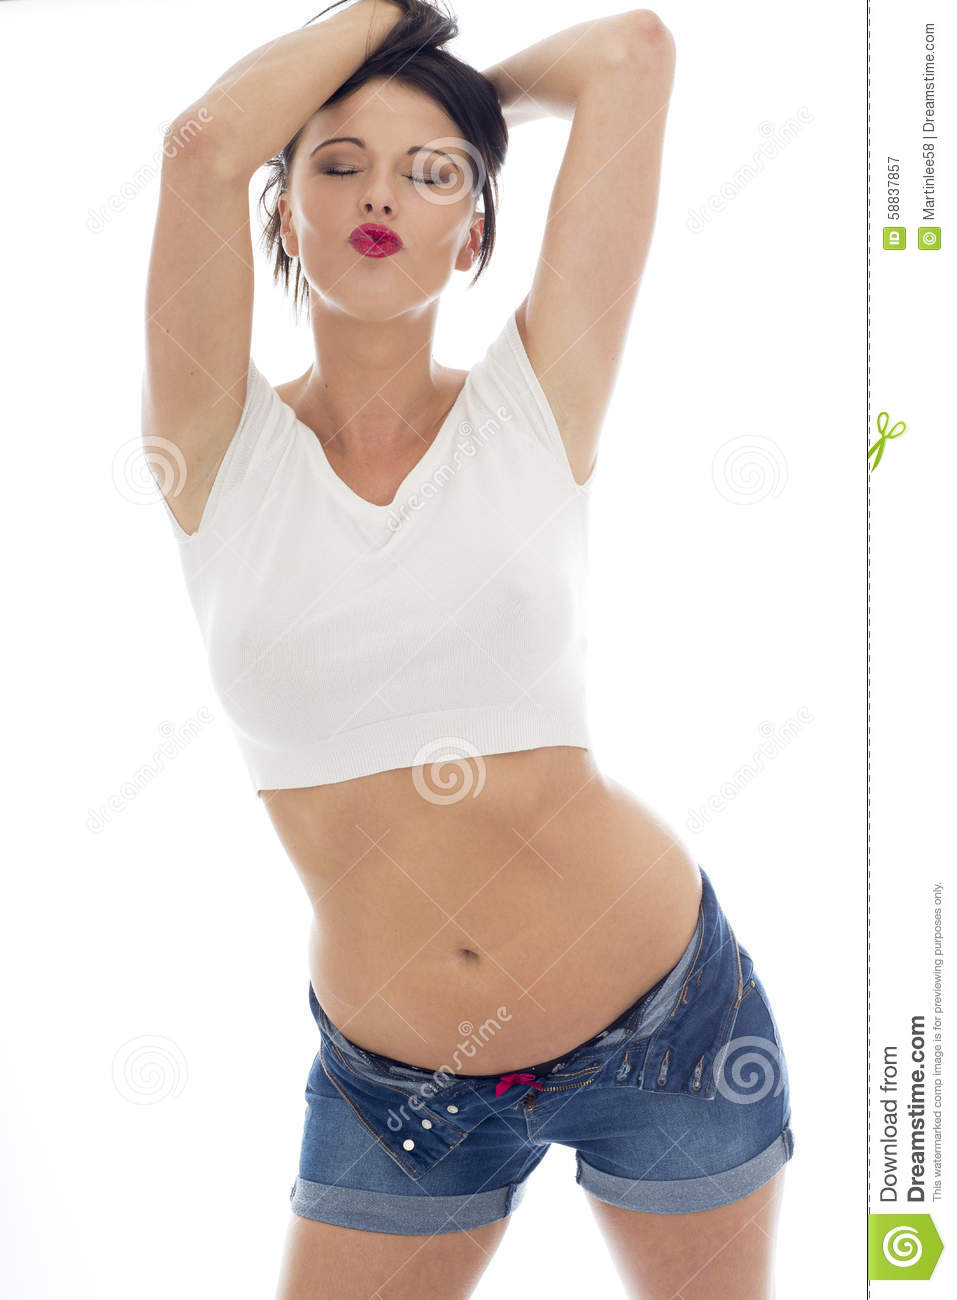 3ae5c9733d Young Caucasian Woman, Wearing a White Vest Top and Blue Denim Shorts,  Posing Pin Up Against A White Background